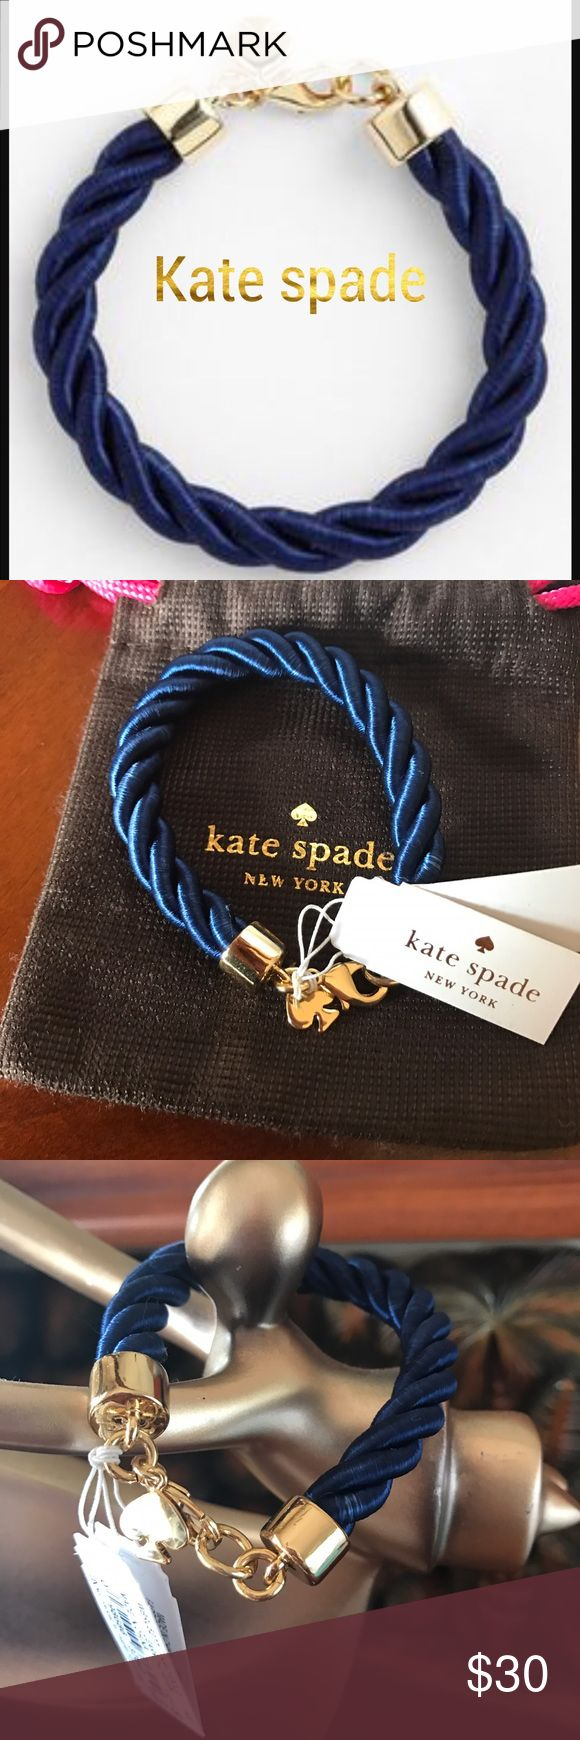 Kate spade Learn the Ropes bracelet Kate Spade Authentic Rope Bracelet. Comes With Dust Bag! Navy Blue Rope With Gold Charms And Clasps.♠️🚫no trades ❌ kate spade Jewelry Bracelets